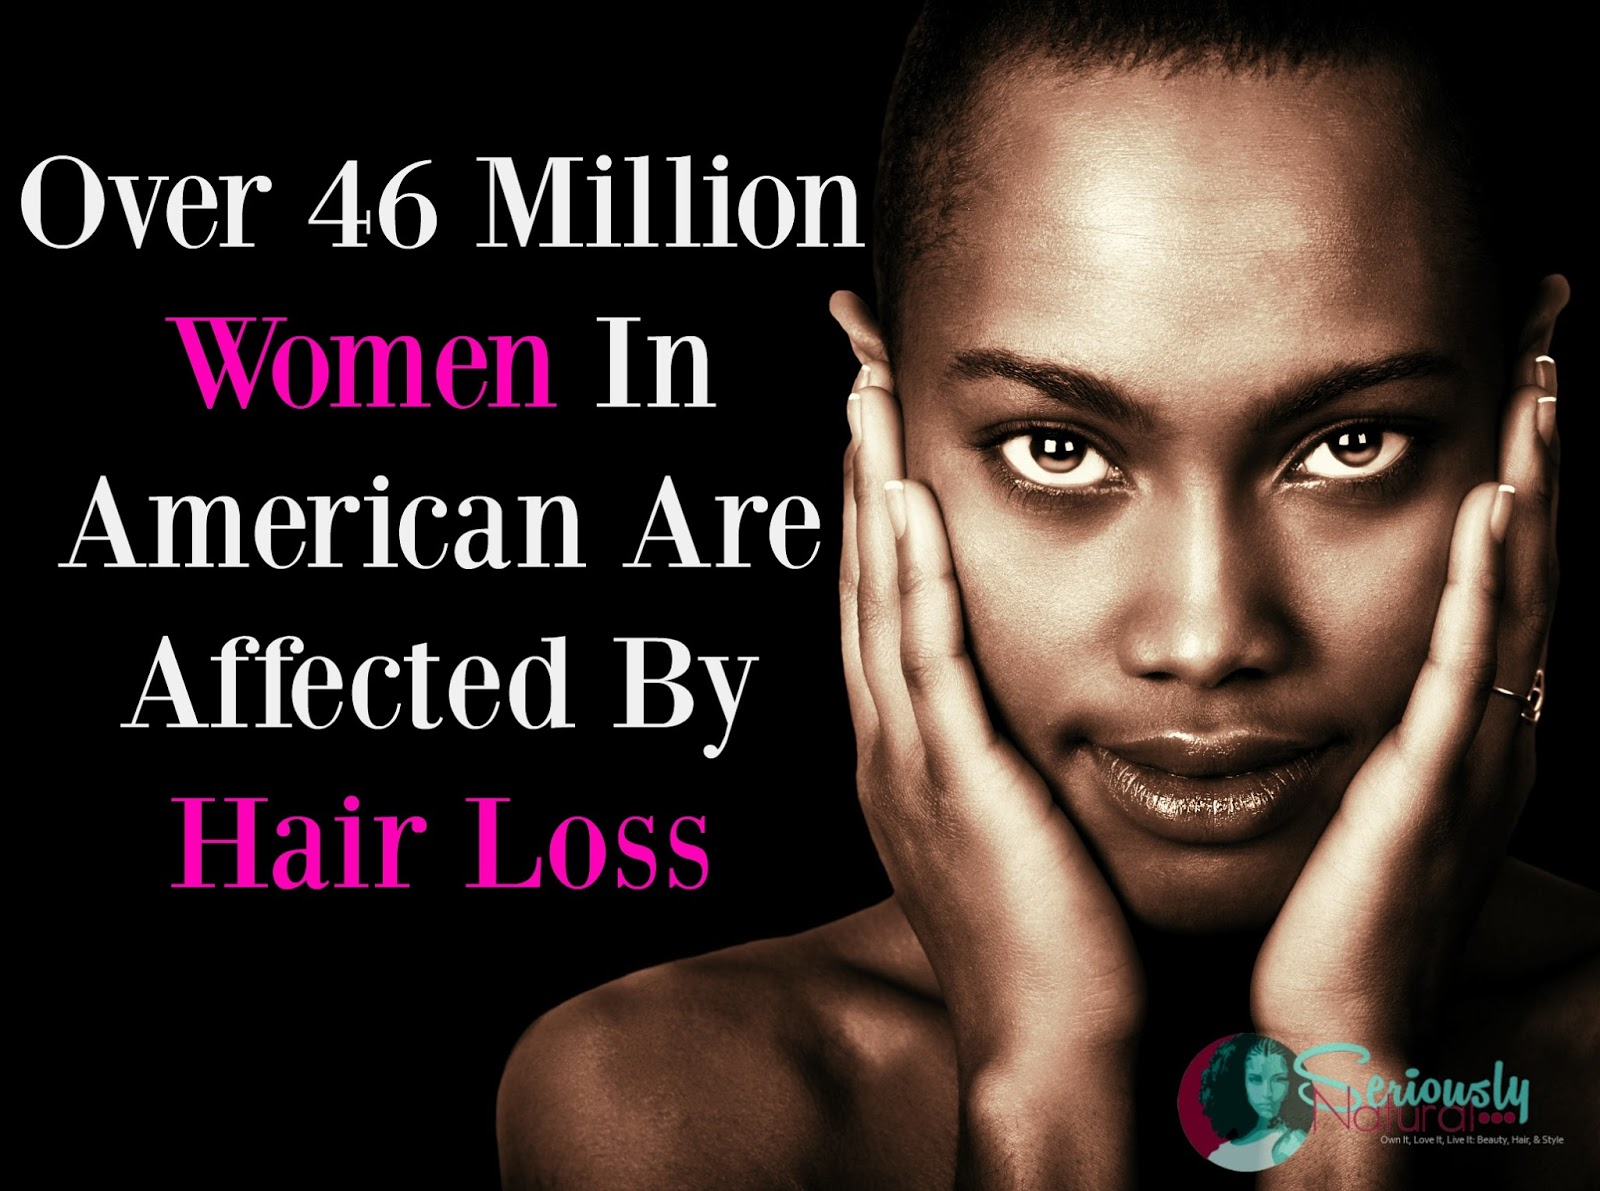 Over 46 Million Women In American Are Affected By Hair Loss & We Can Expect That Number To Rise